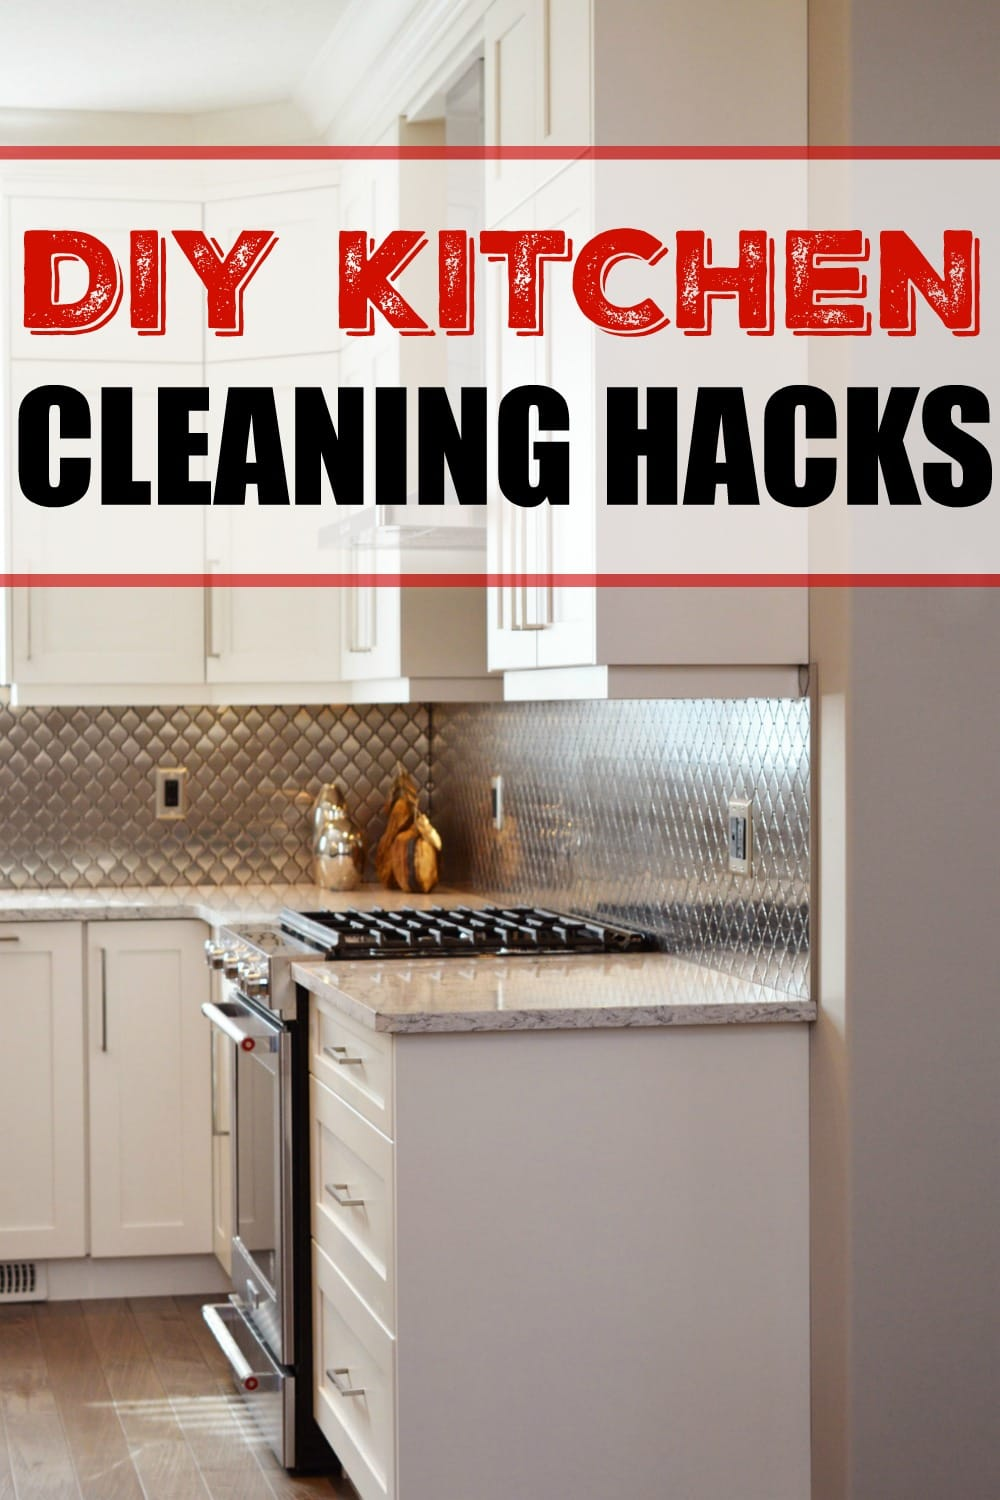 17 Genius Kitchen Cleaning Hacks to Save Time - Super Foods Life